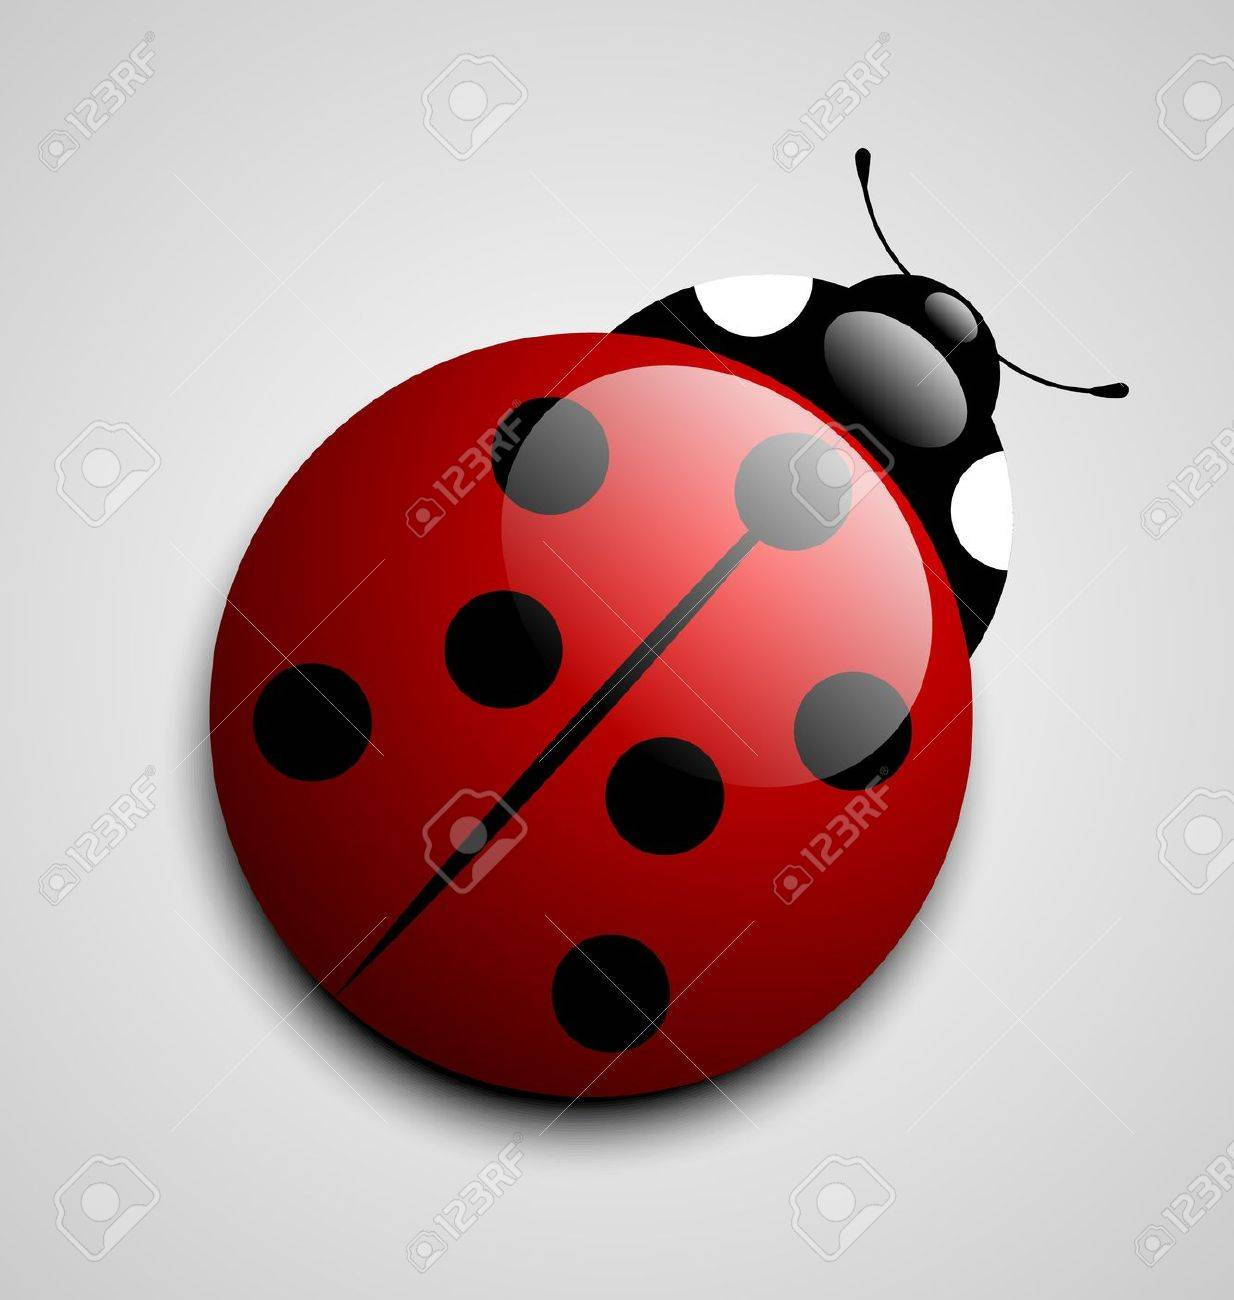 seven spot ladybird stock photos u0026 pictures royalty free seven